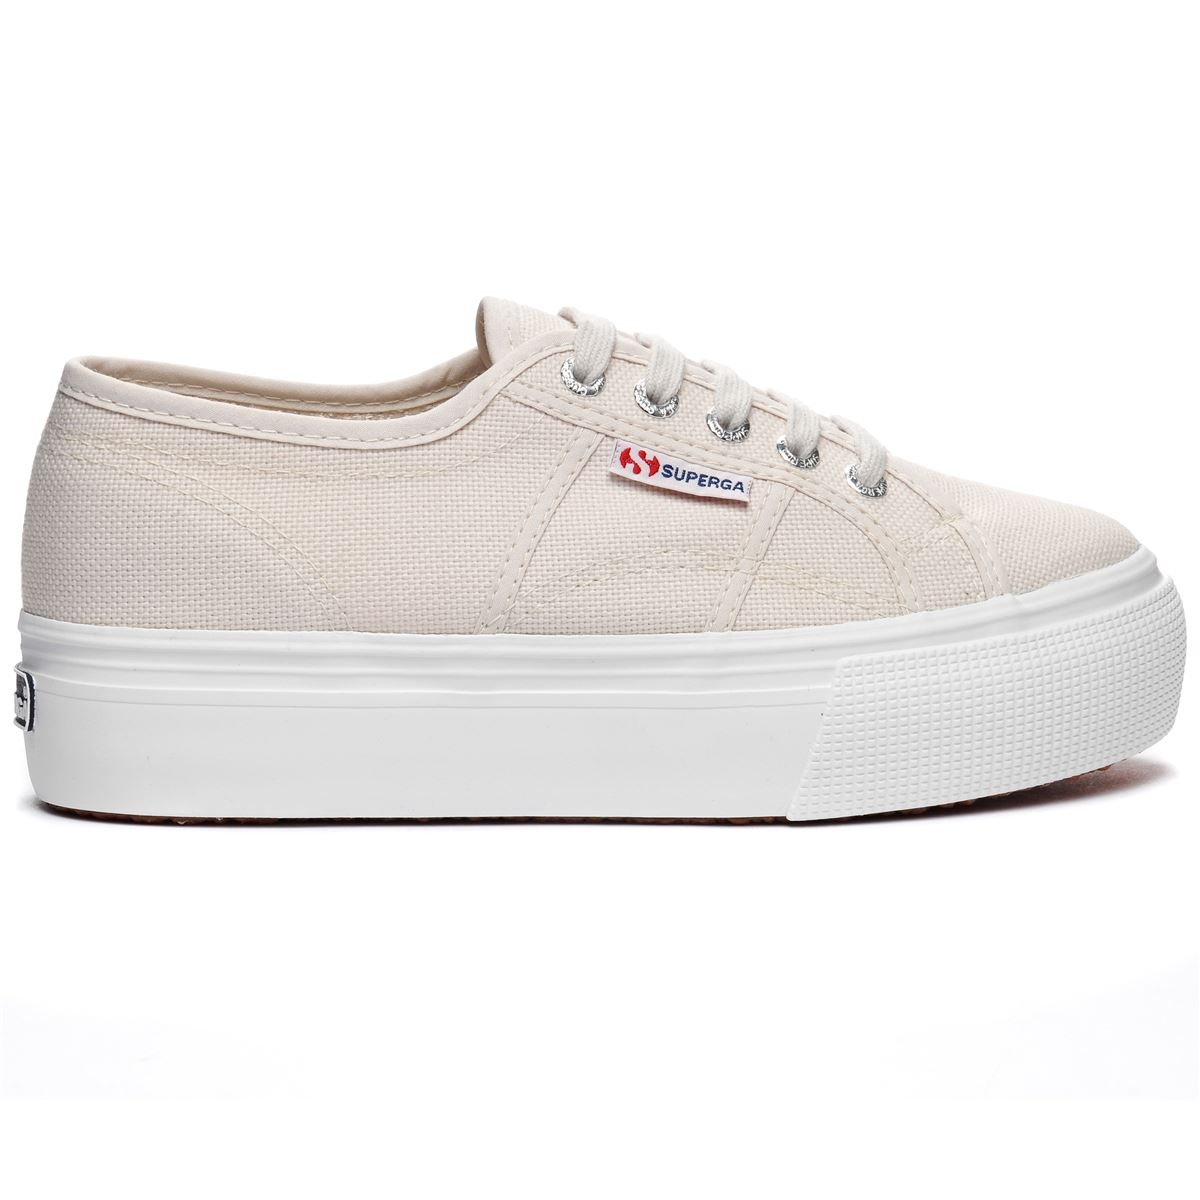 SUPERGA 2790 zeppa 4cm Scarpe DONNA tela 2790ACOTW LINEA UP AND DOWN acotw 901kx